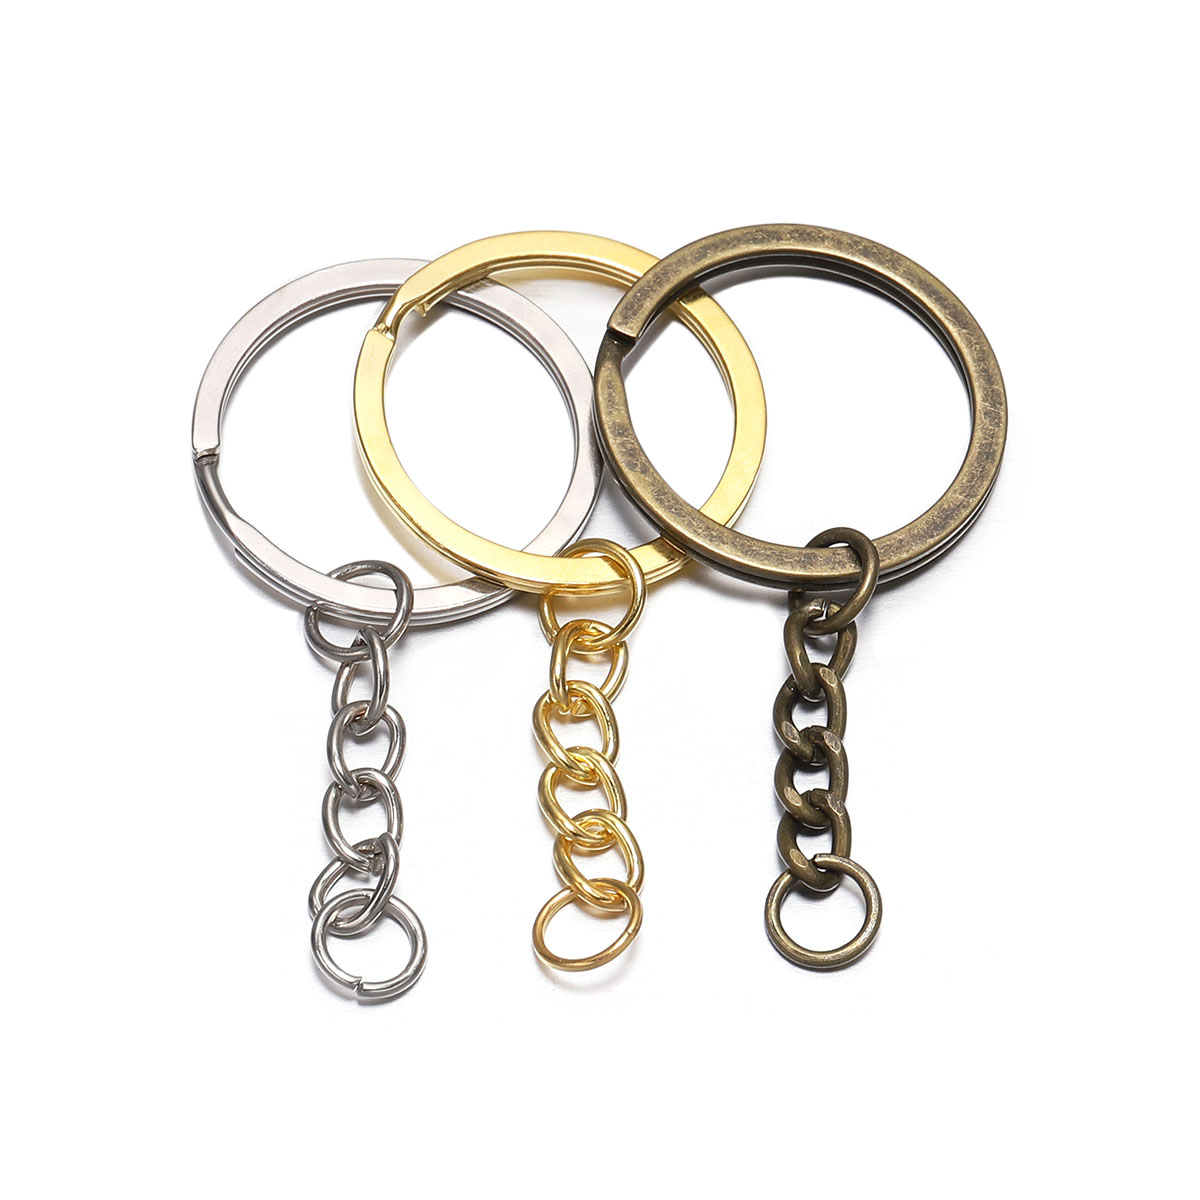 10 Pcs/lot Key Ring Key Chain Gold Rhodium Antique Bronze 60mm Long Round Split Keychain Keyrings Jewelry Making Bulk Wholesale